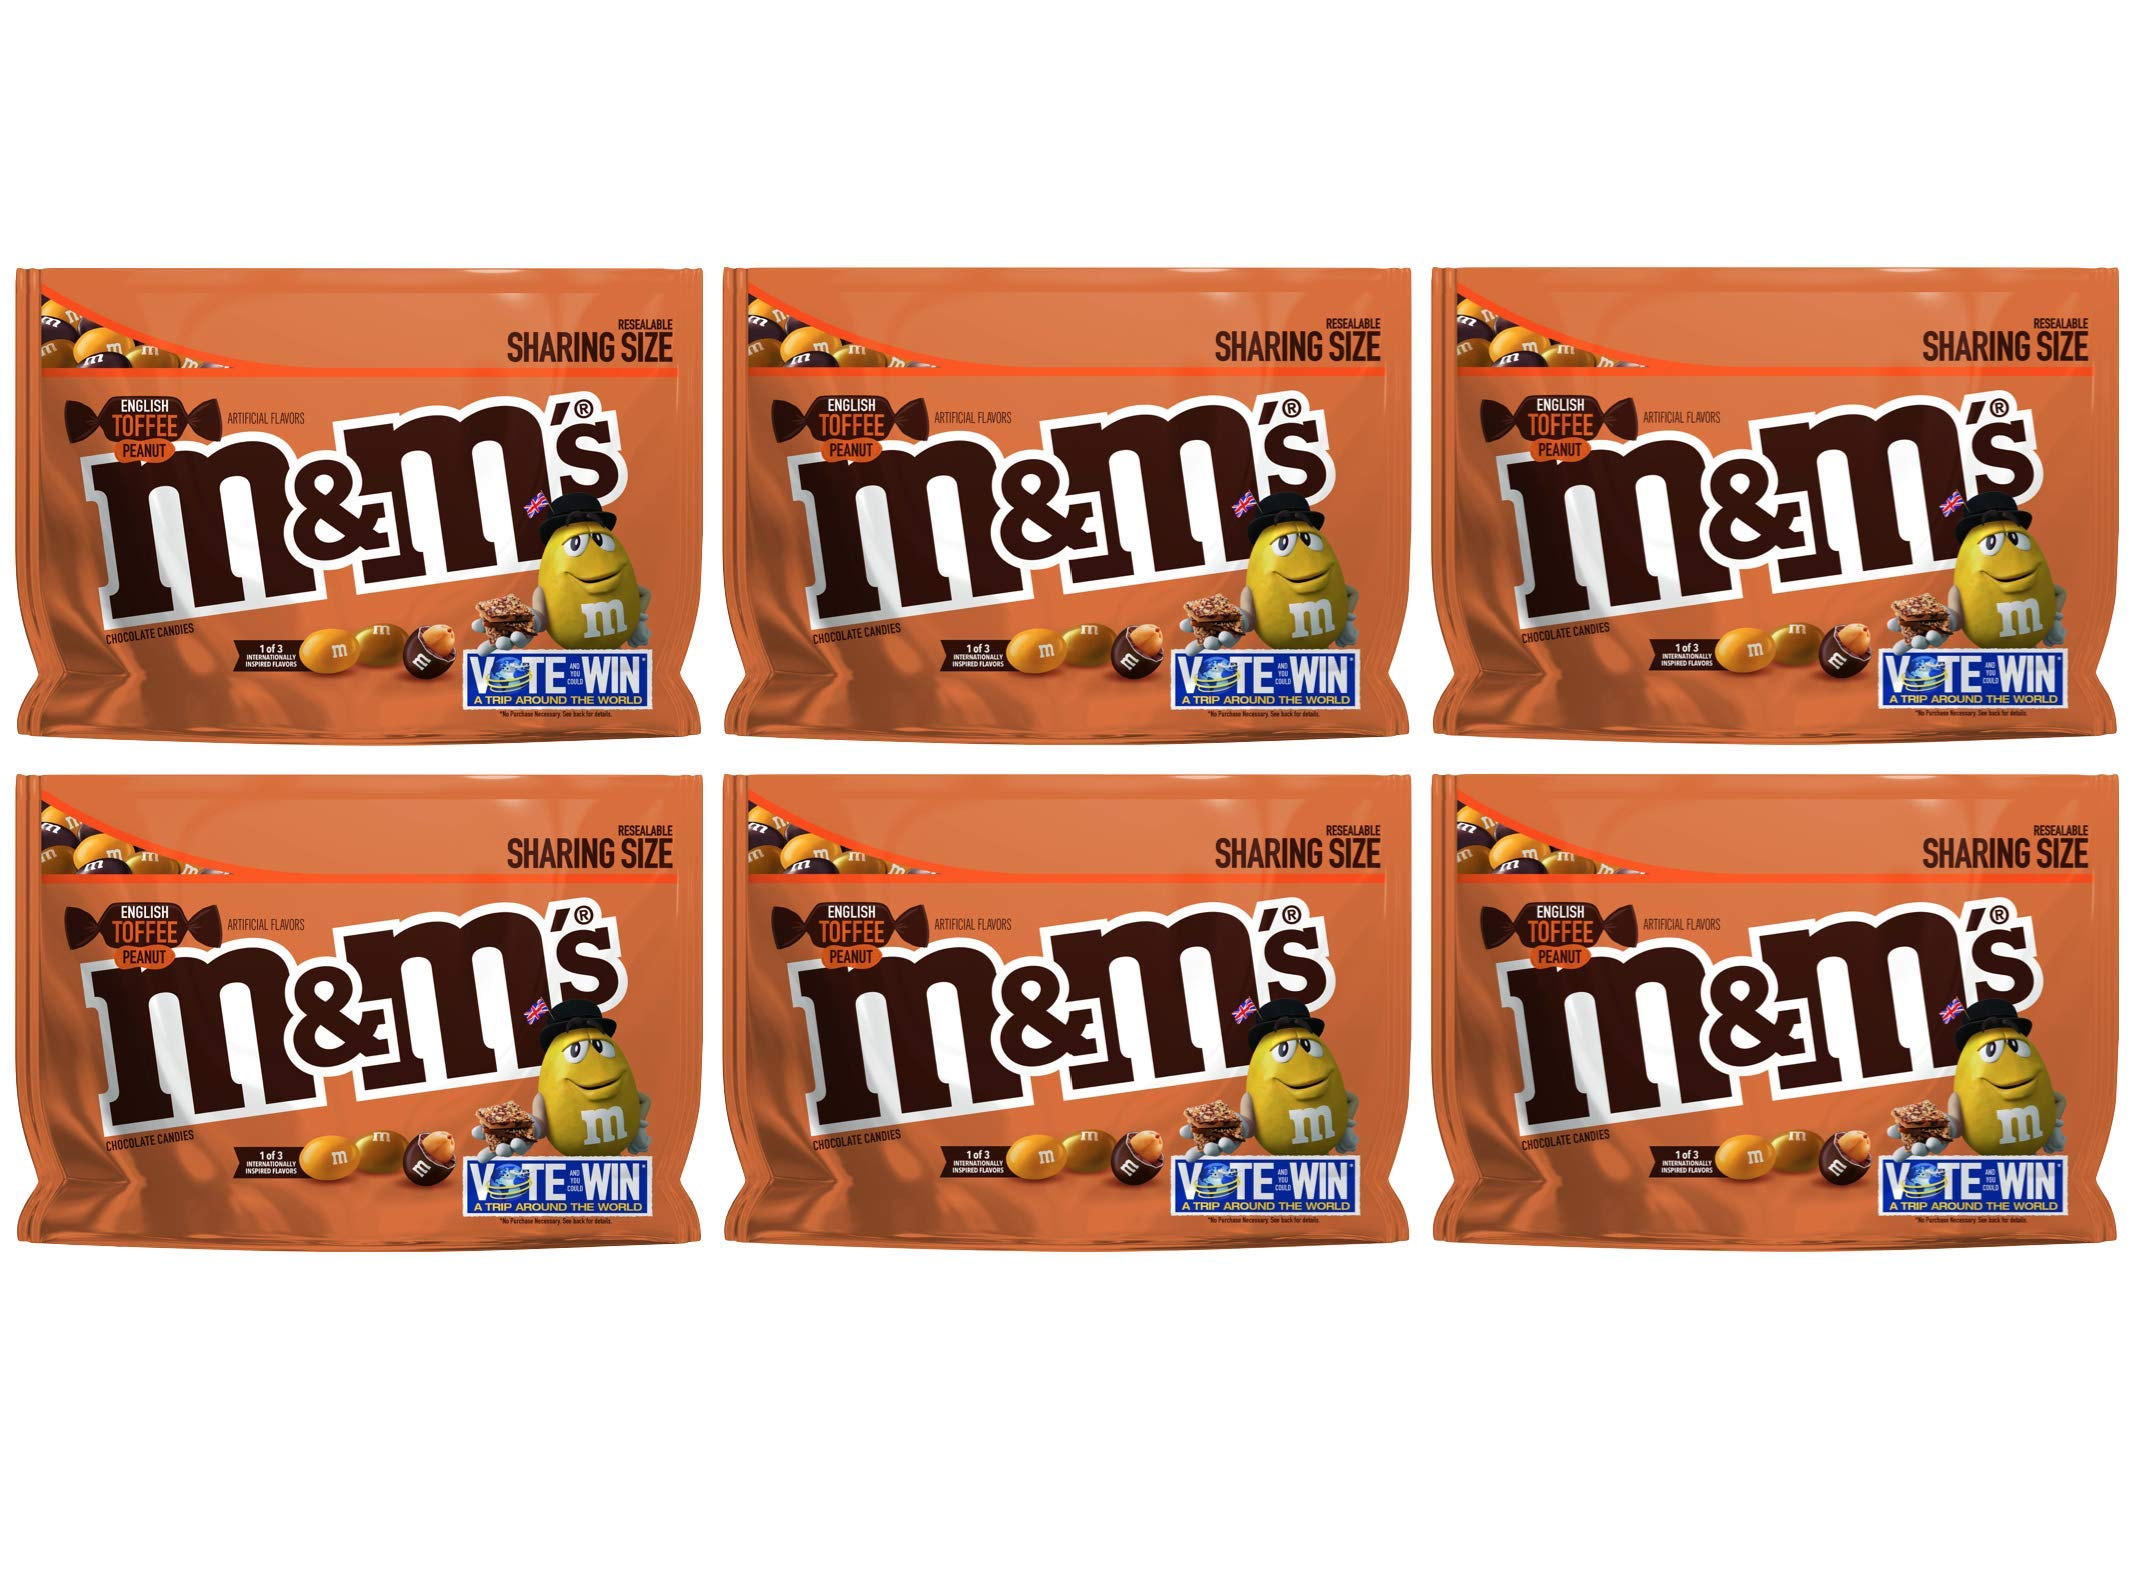 M&M's (Pack of 6) Chocolate Candy Flavor Vote English Toffee Peanut Sharing Size, 9.6 Ounce Bag